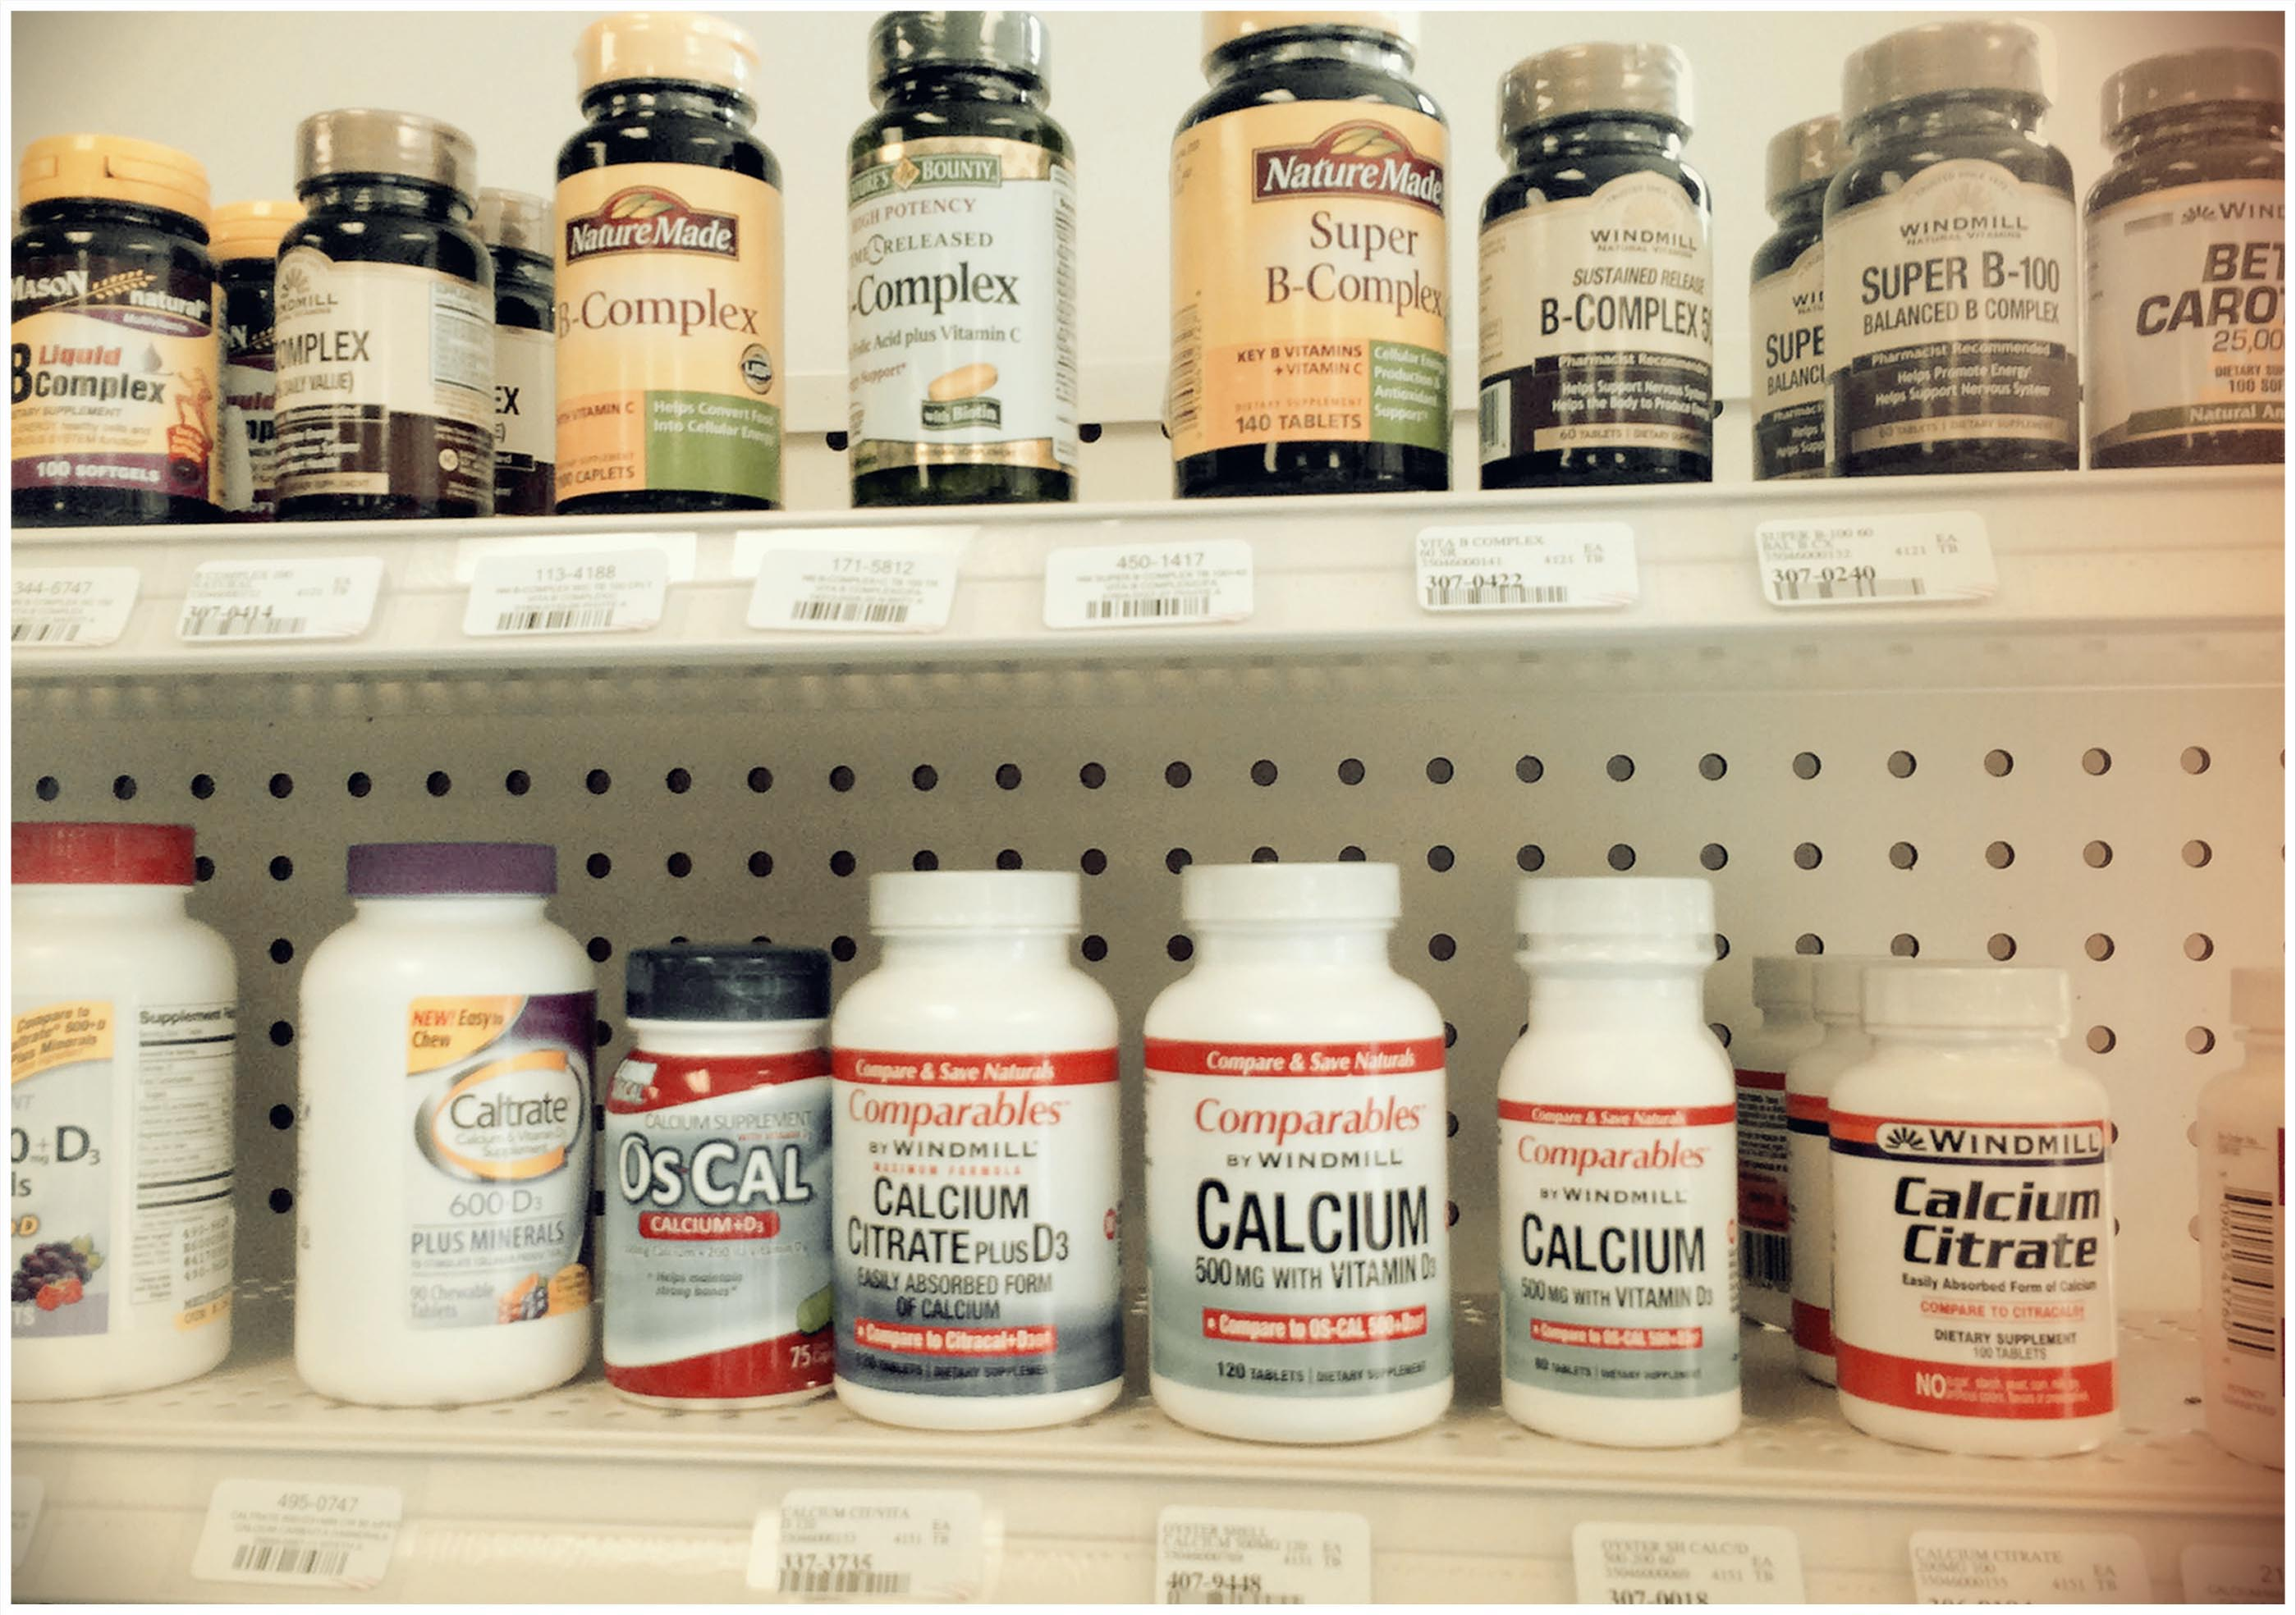 And be wary of any supplements or medications designed to enhance sexual pleasure forecasting